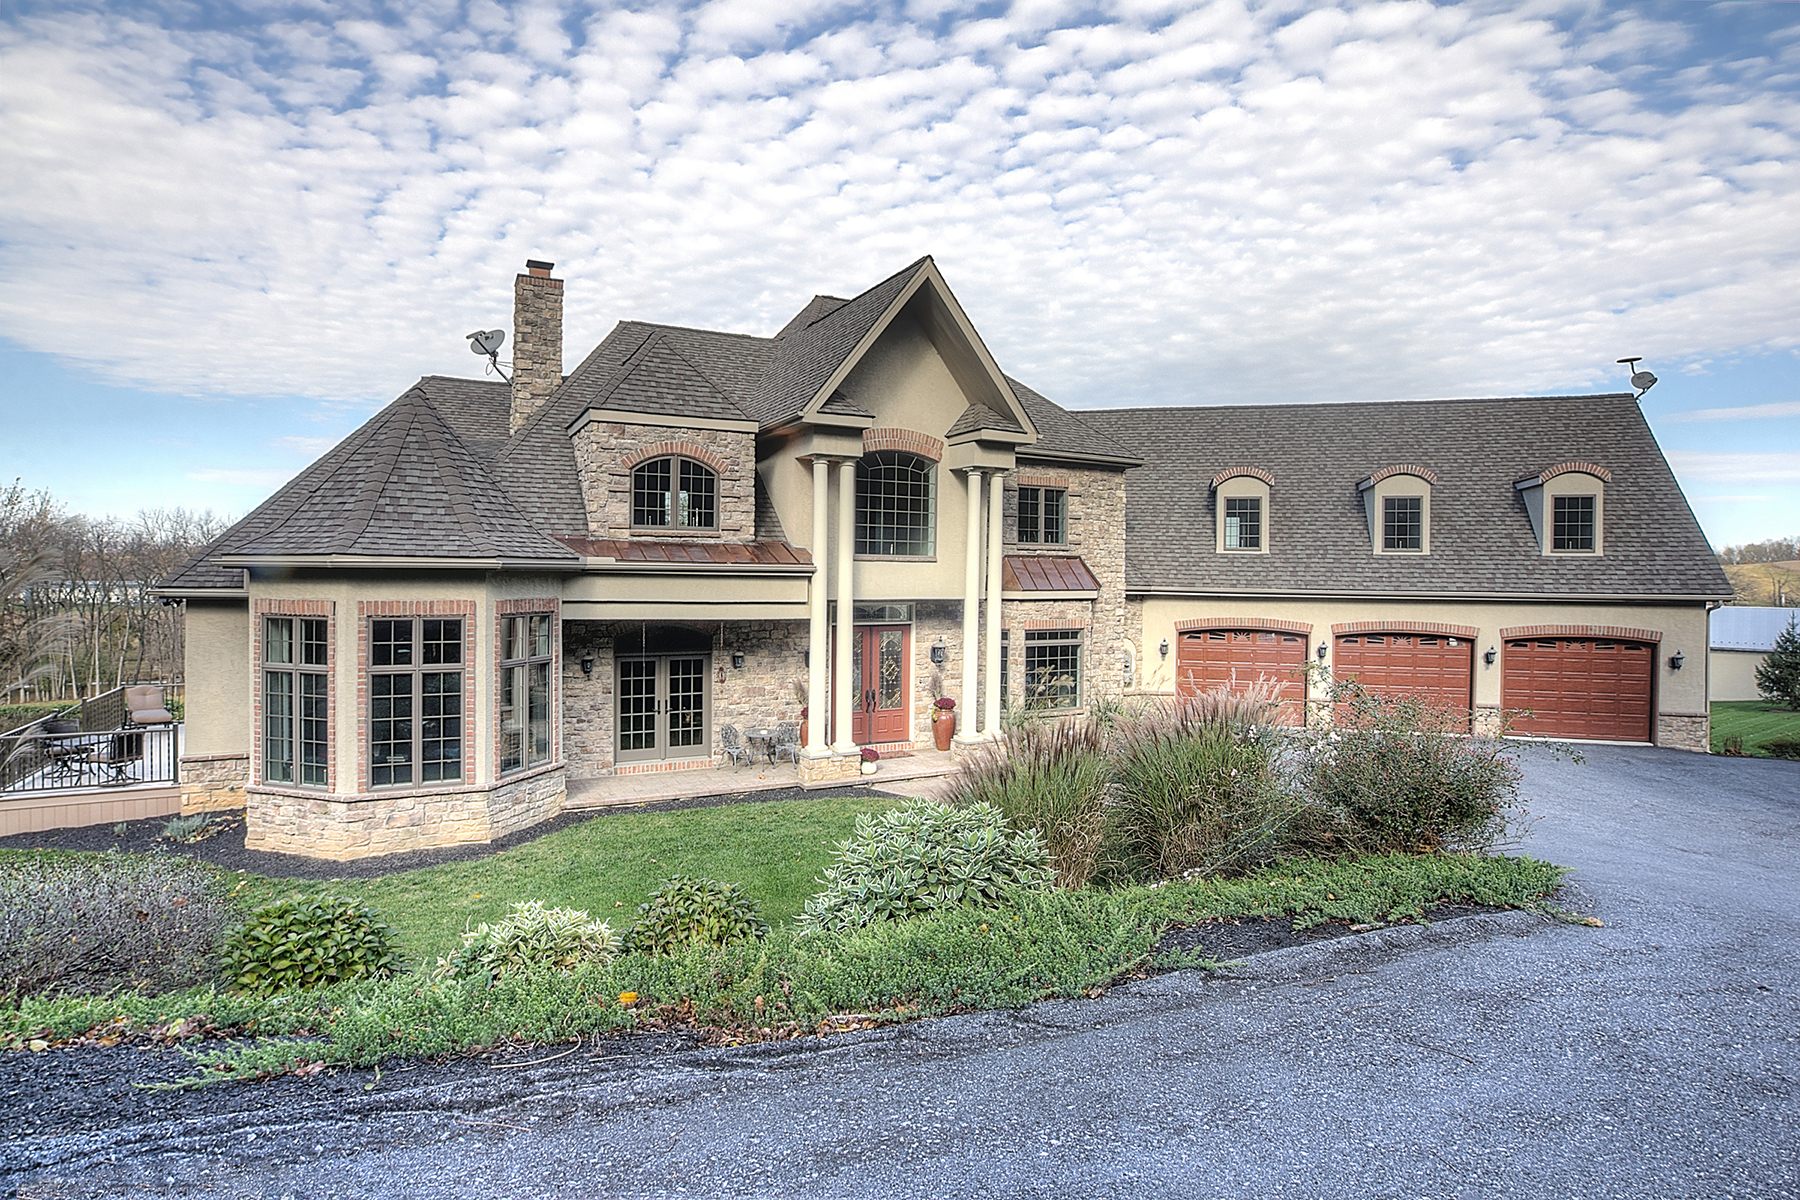 Single Family Home for Sale at 650 Power Road Manheim, Pennsylvania 17545 United States